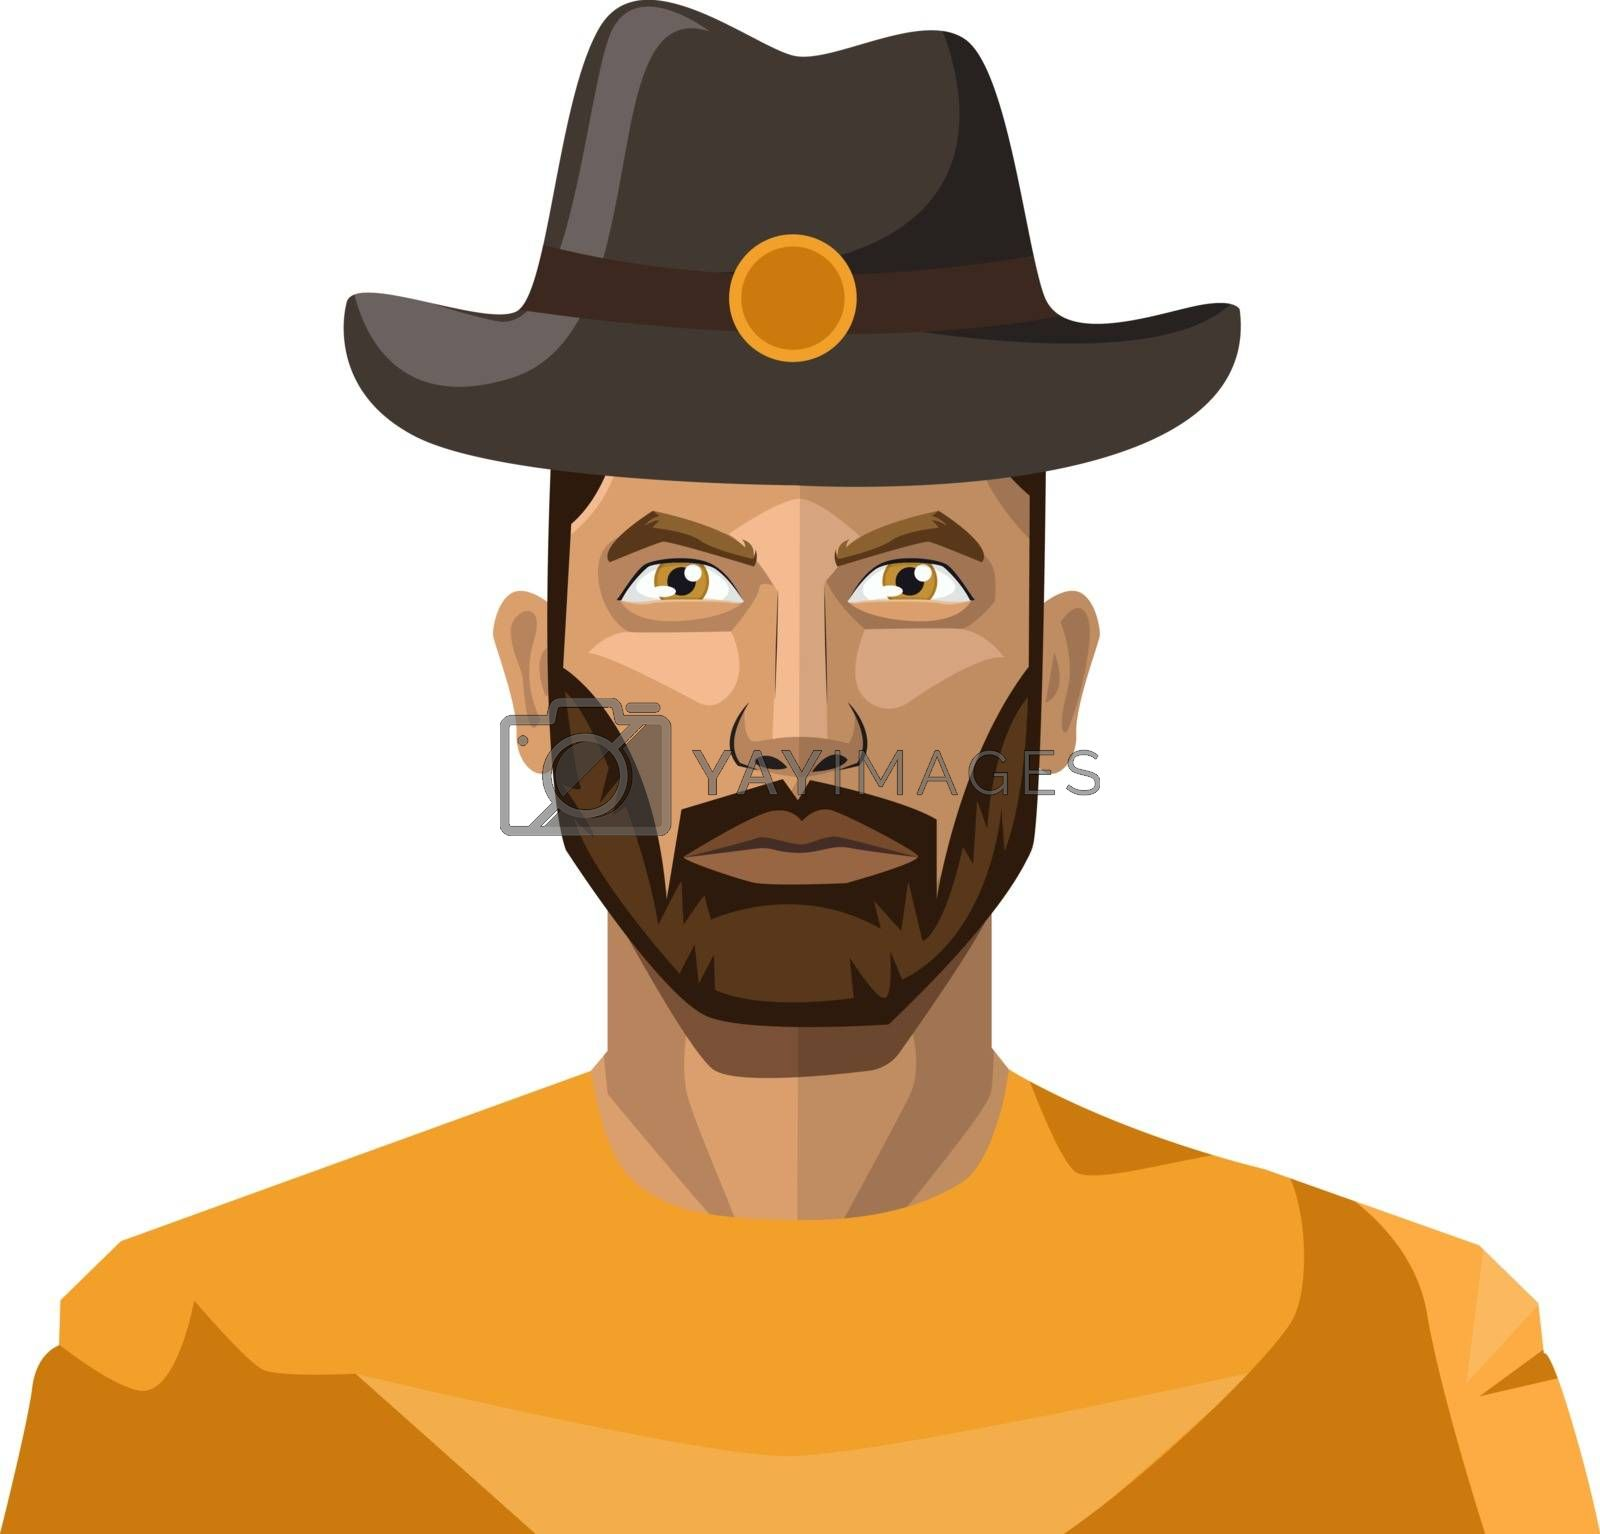 Royalty free image of Guy with beard wearing hat illustration vector on white backgrou by Morphart